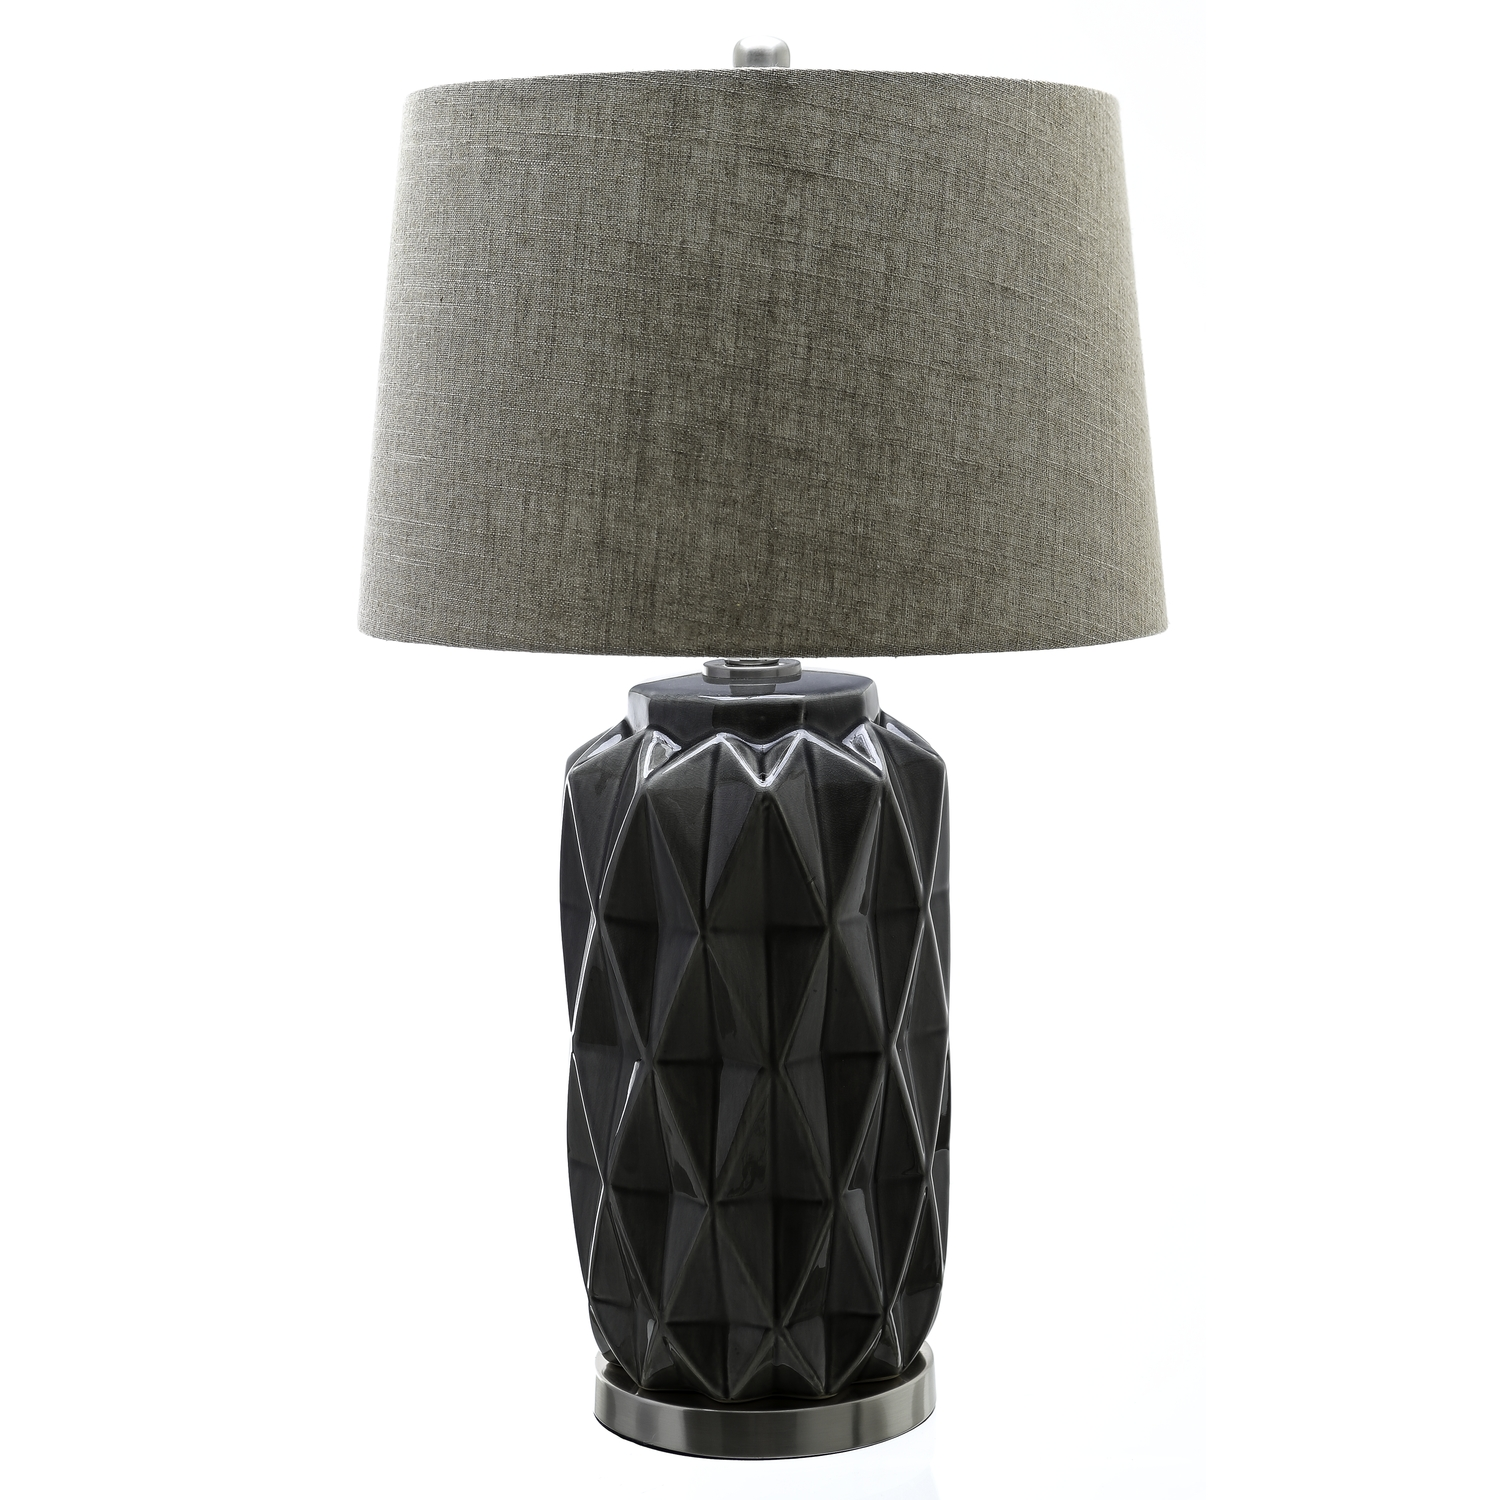 Acantho Grey Ceramic Lamp With Linen Shade - Image 1